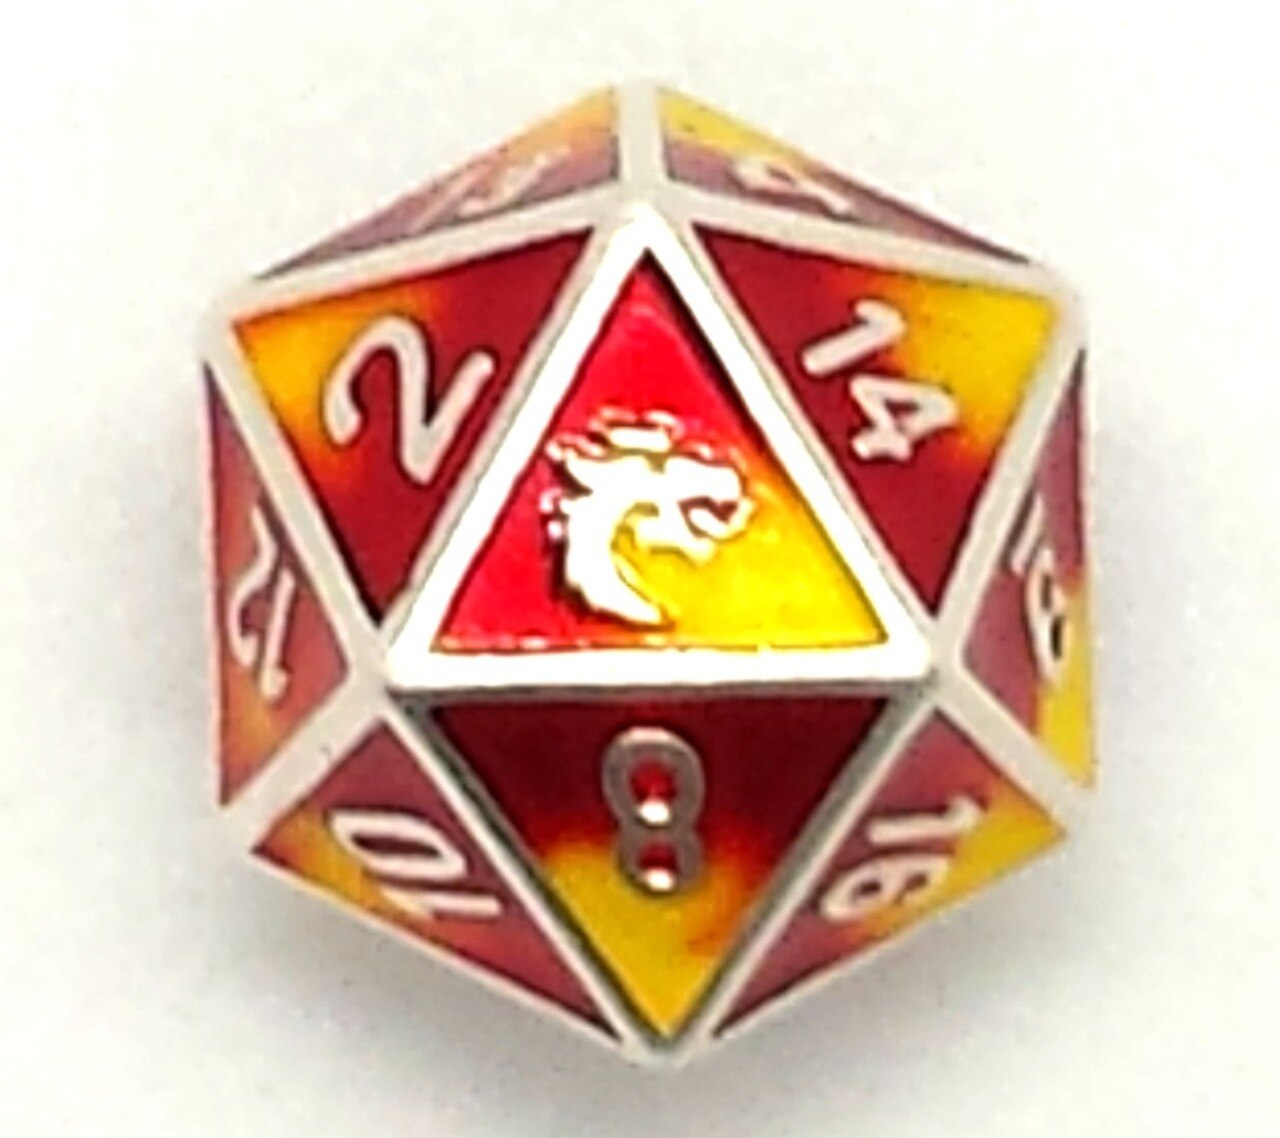 Old School DnD RPG D20 Metal Dice: Dragon Forged - Platinum Red & Yellow